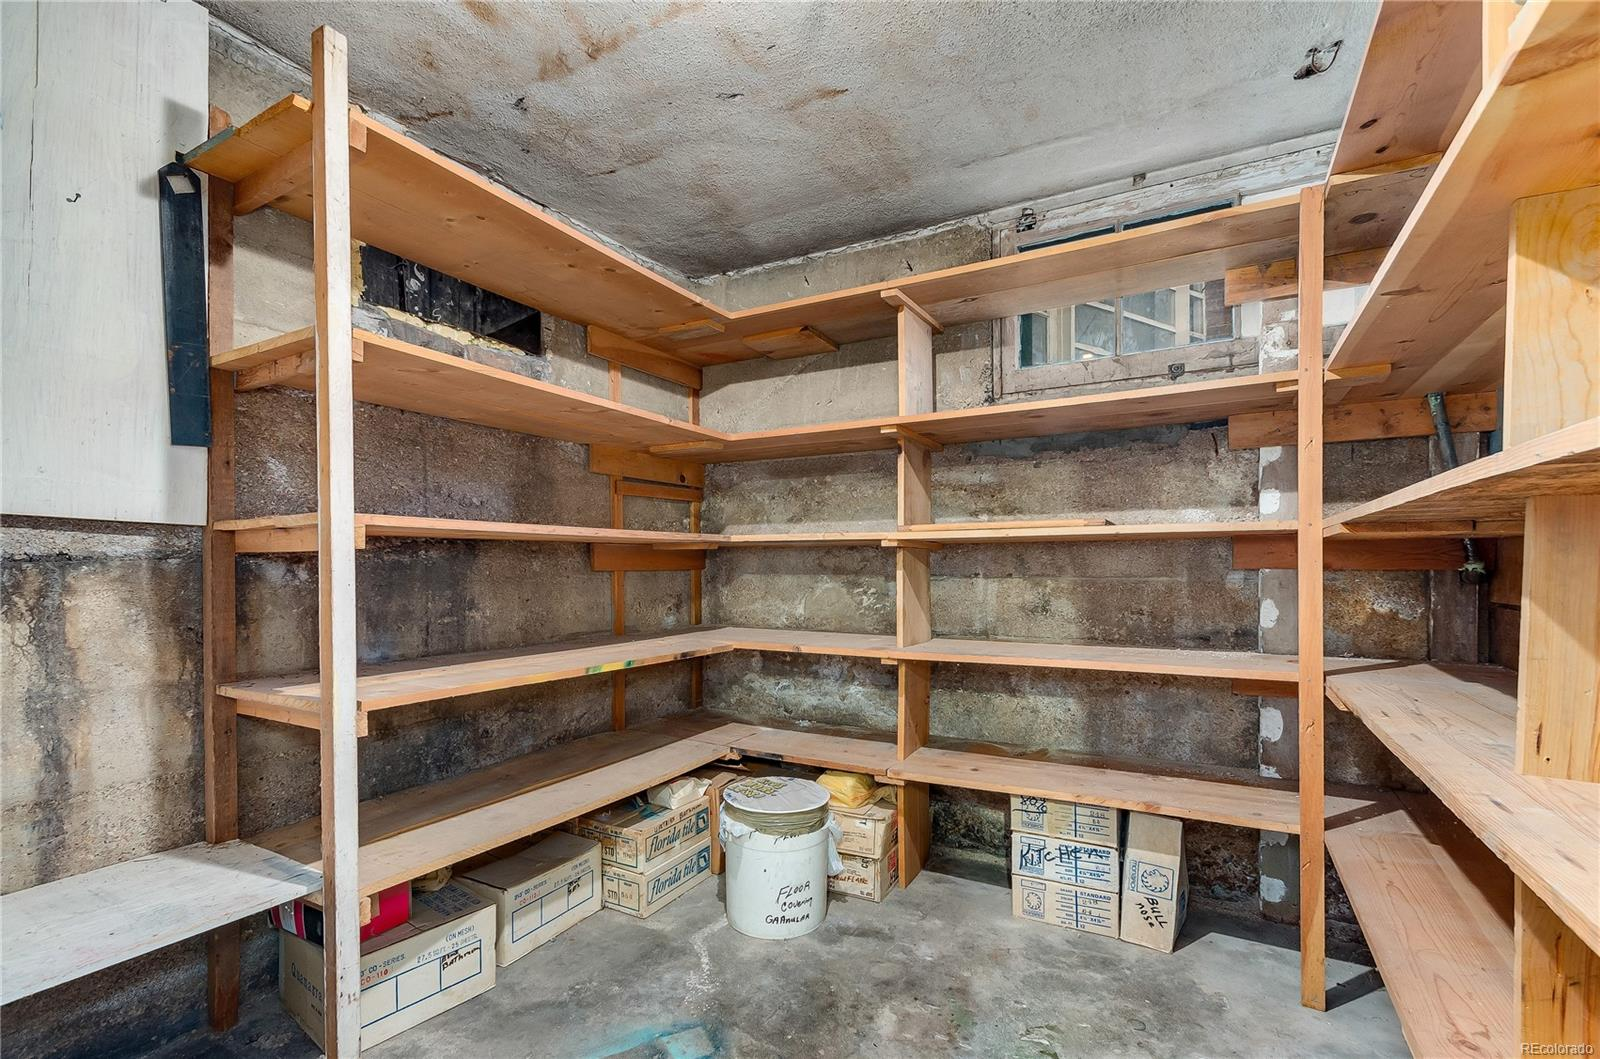 Basement storage area offers extra convenience.